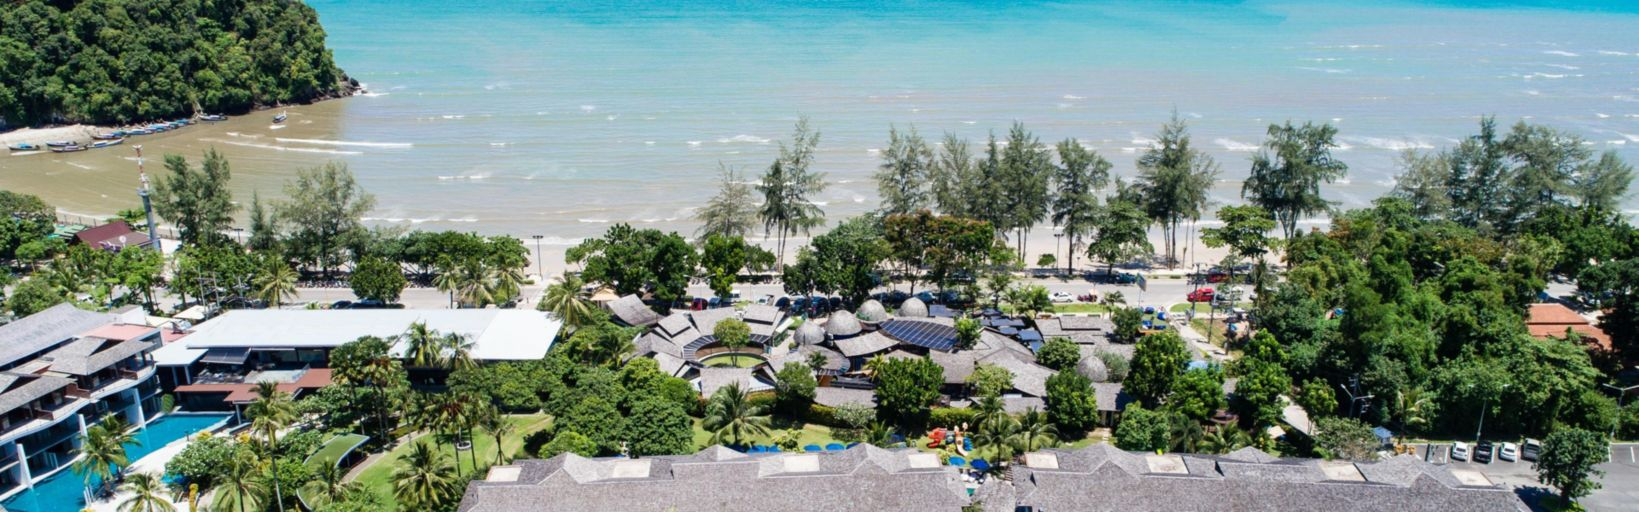 holiday-inn-resort-krabi-5069305186-16×5